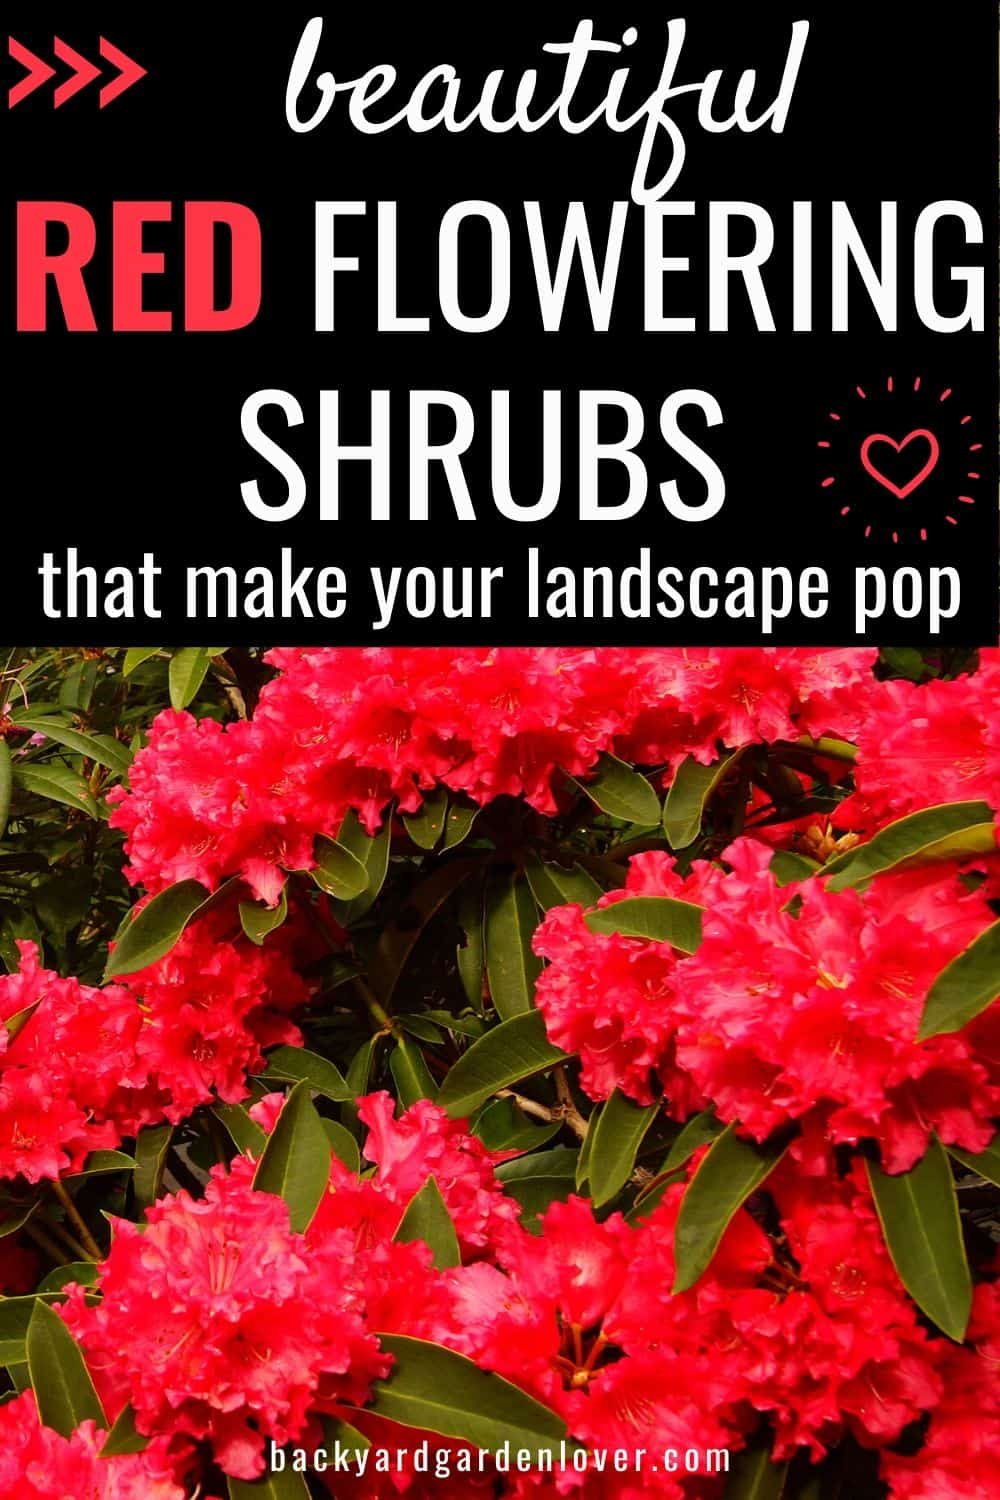 Beautiful red flowering shrubs